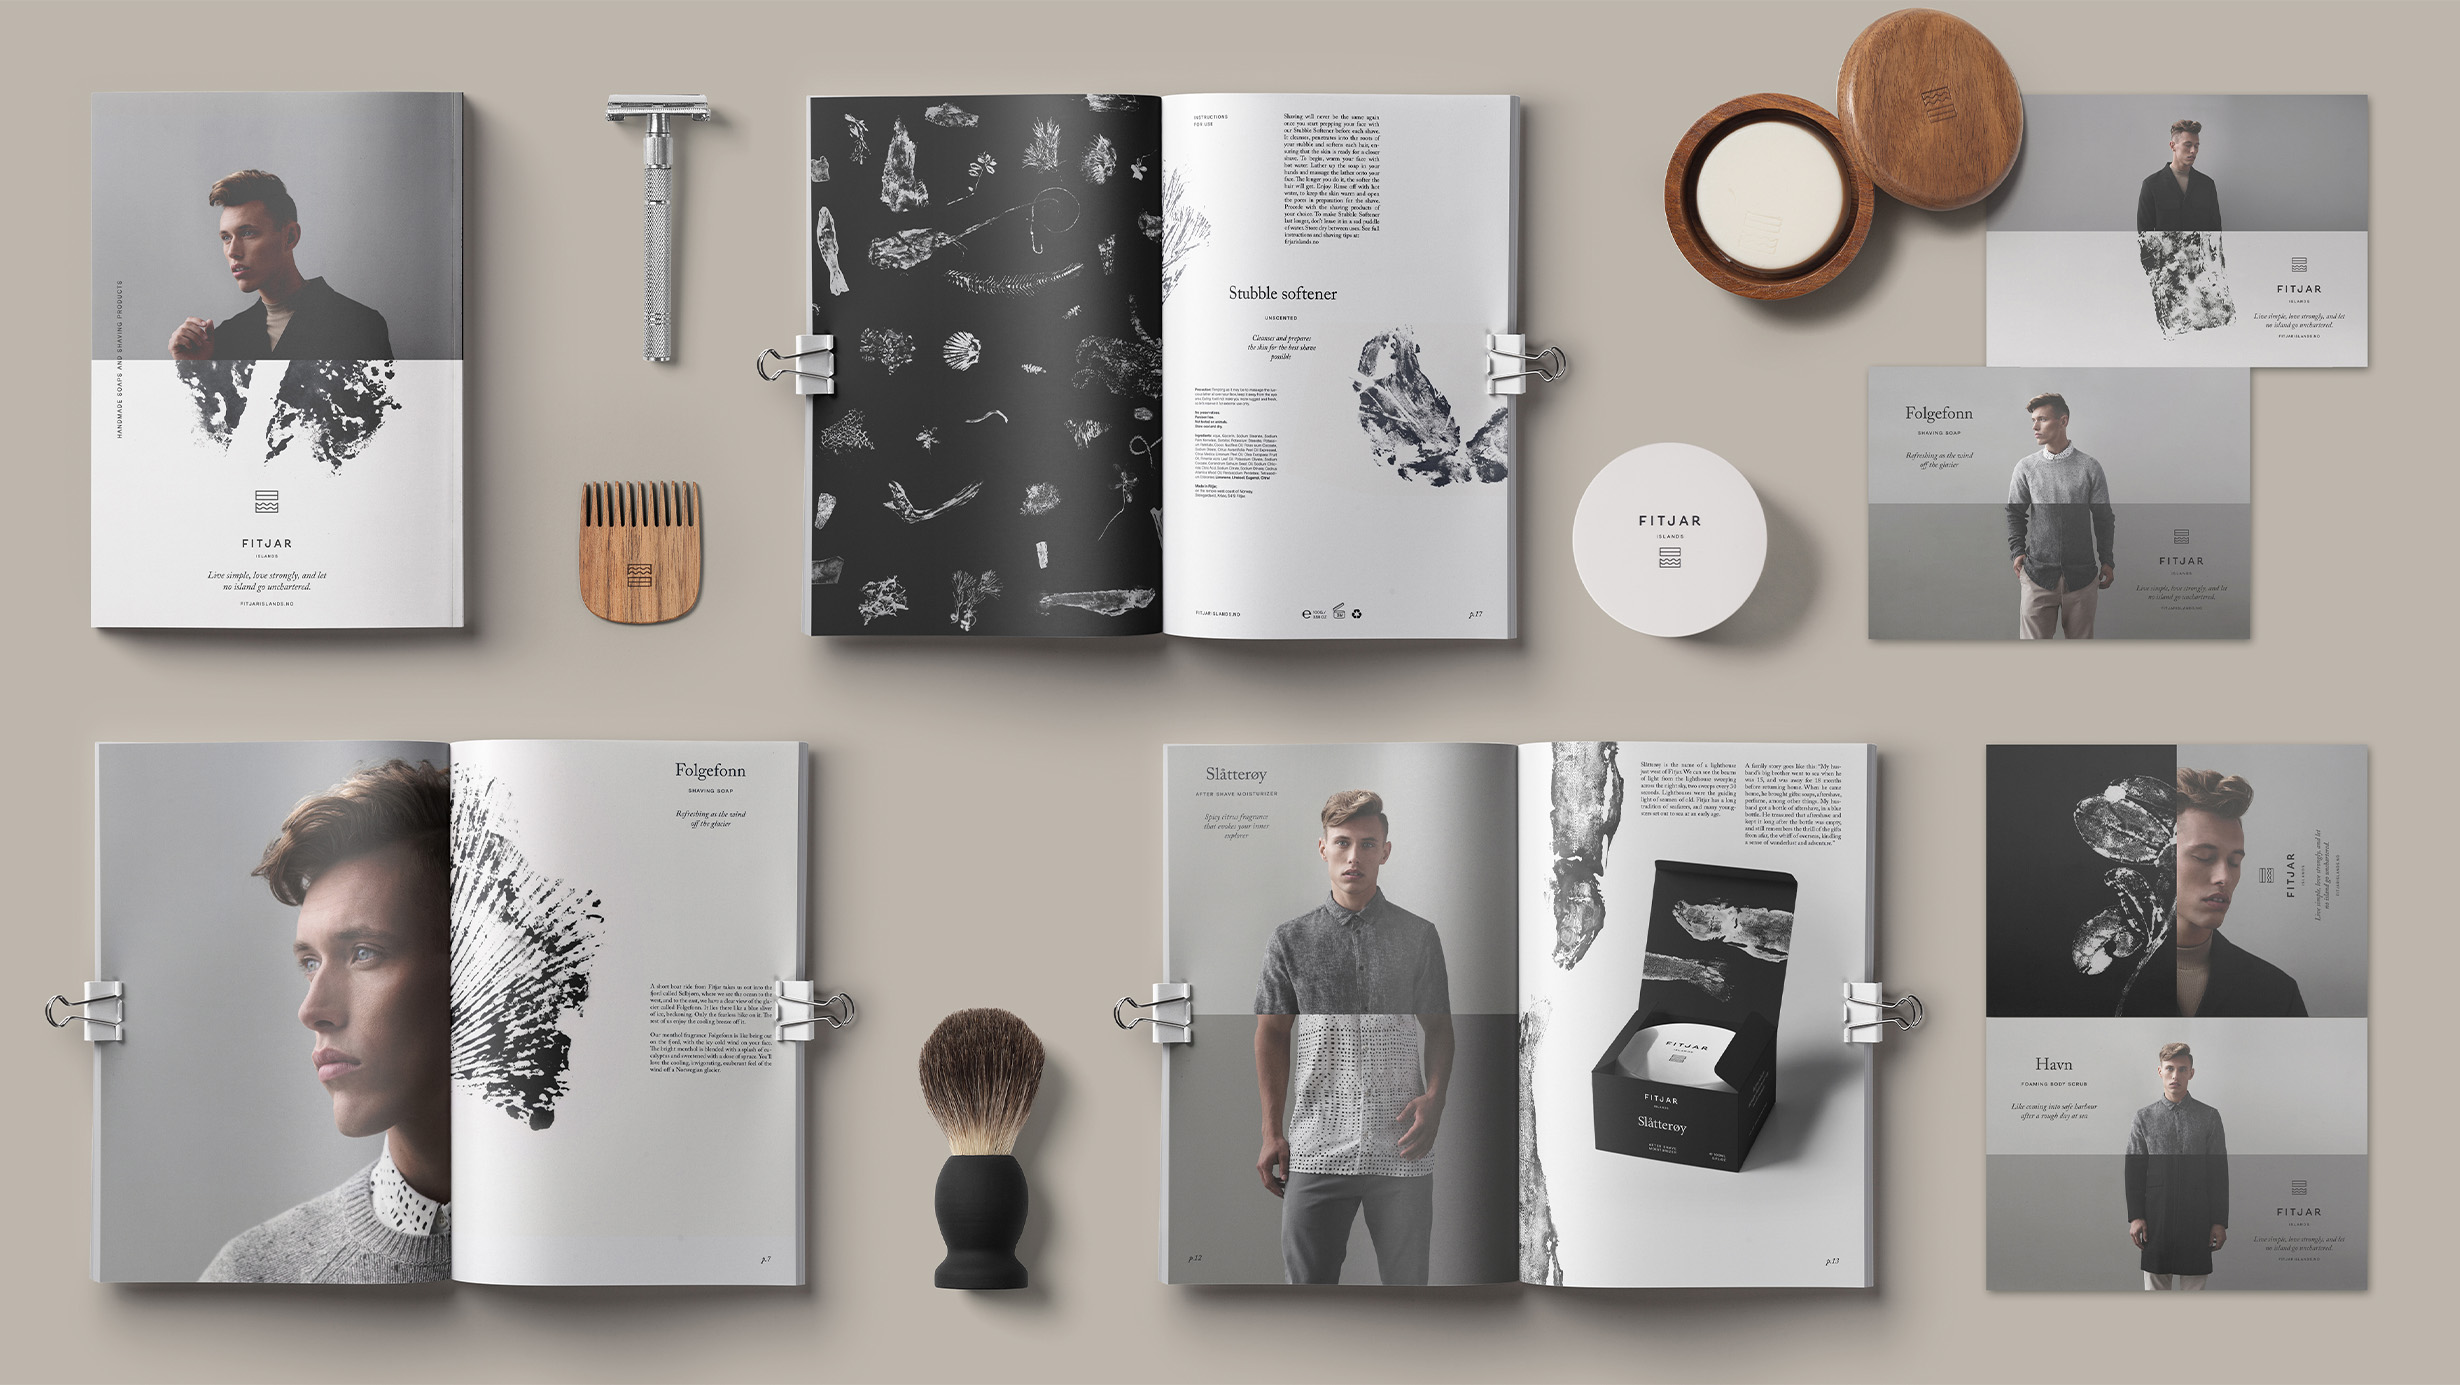 Fitjar Islands product overview branding by ANTI Bergen